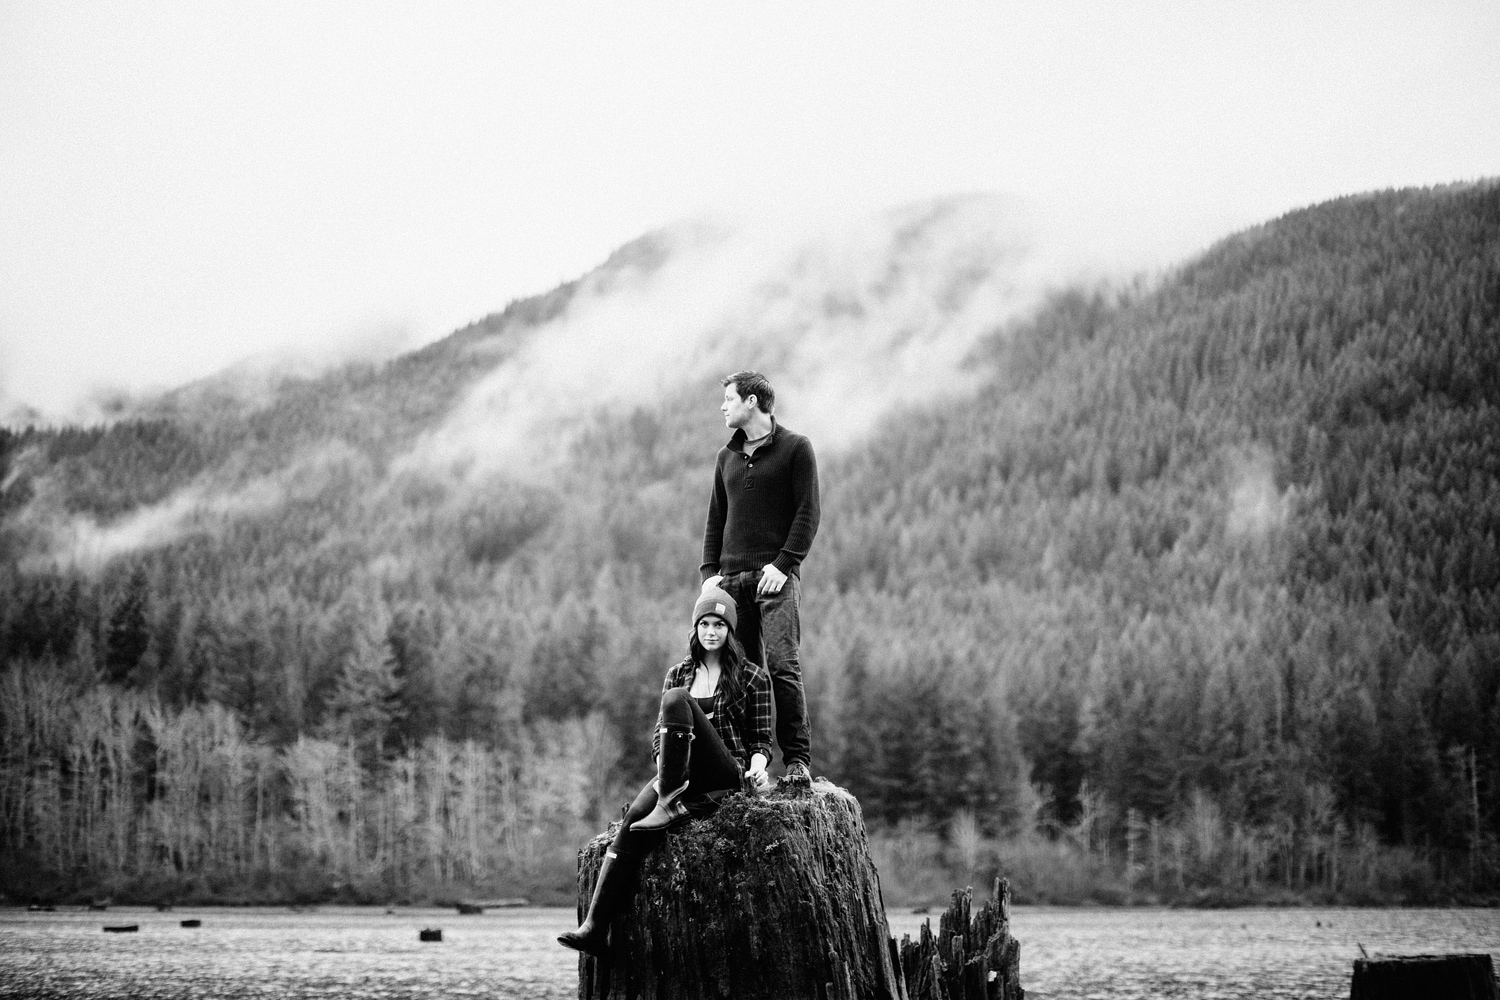 ryan-flynn-photography-rattlesnake-lake-engagement-film-blog-0010.JPG